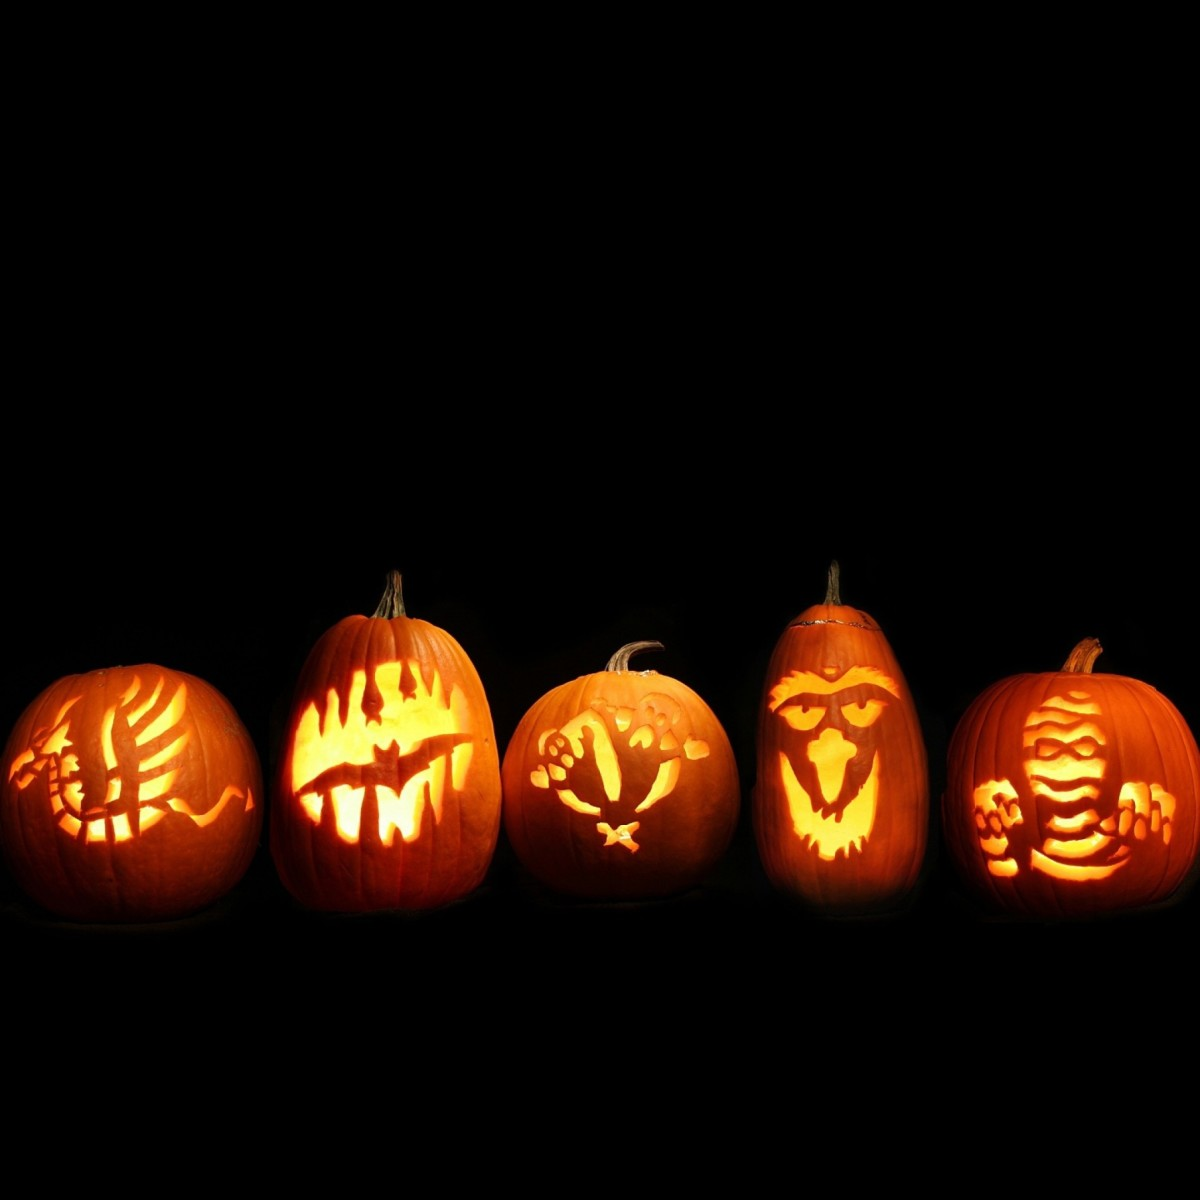 25 Easy Pumpkin Carving Ideas for Halloween